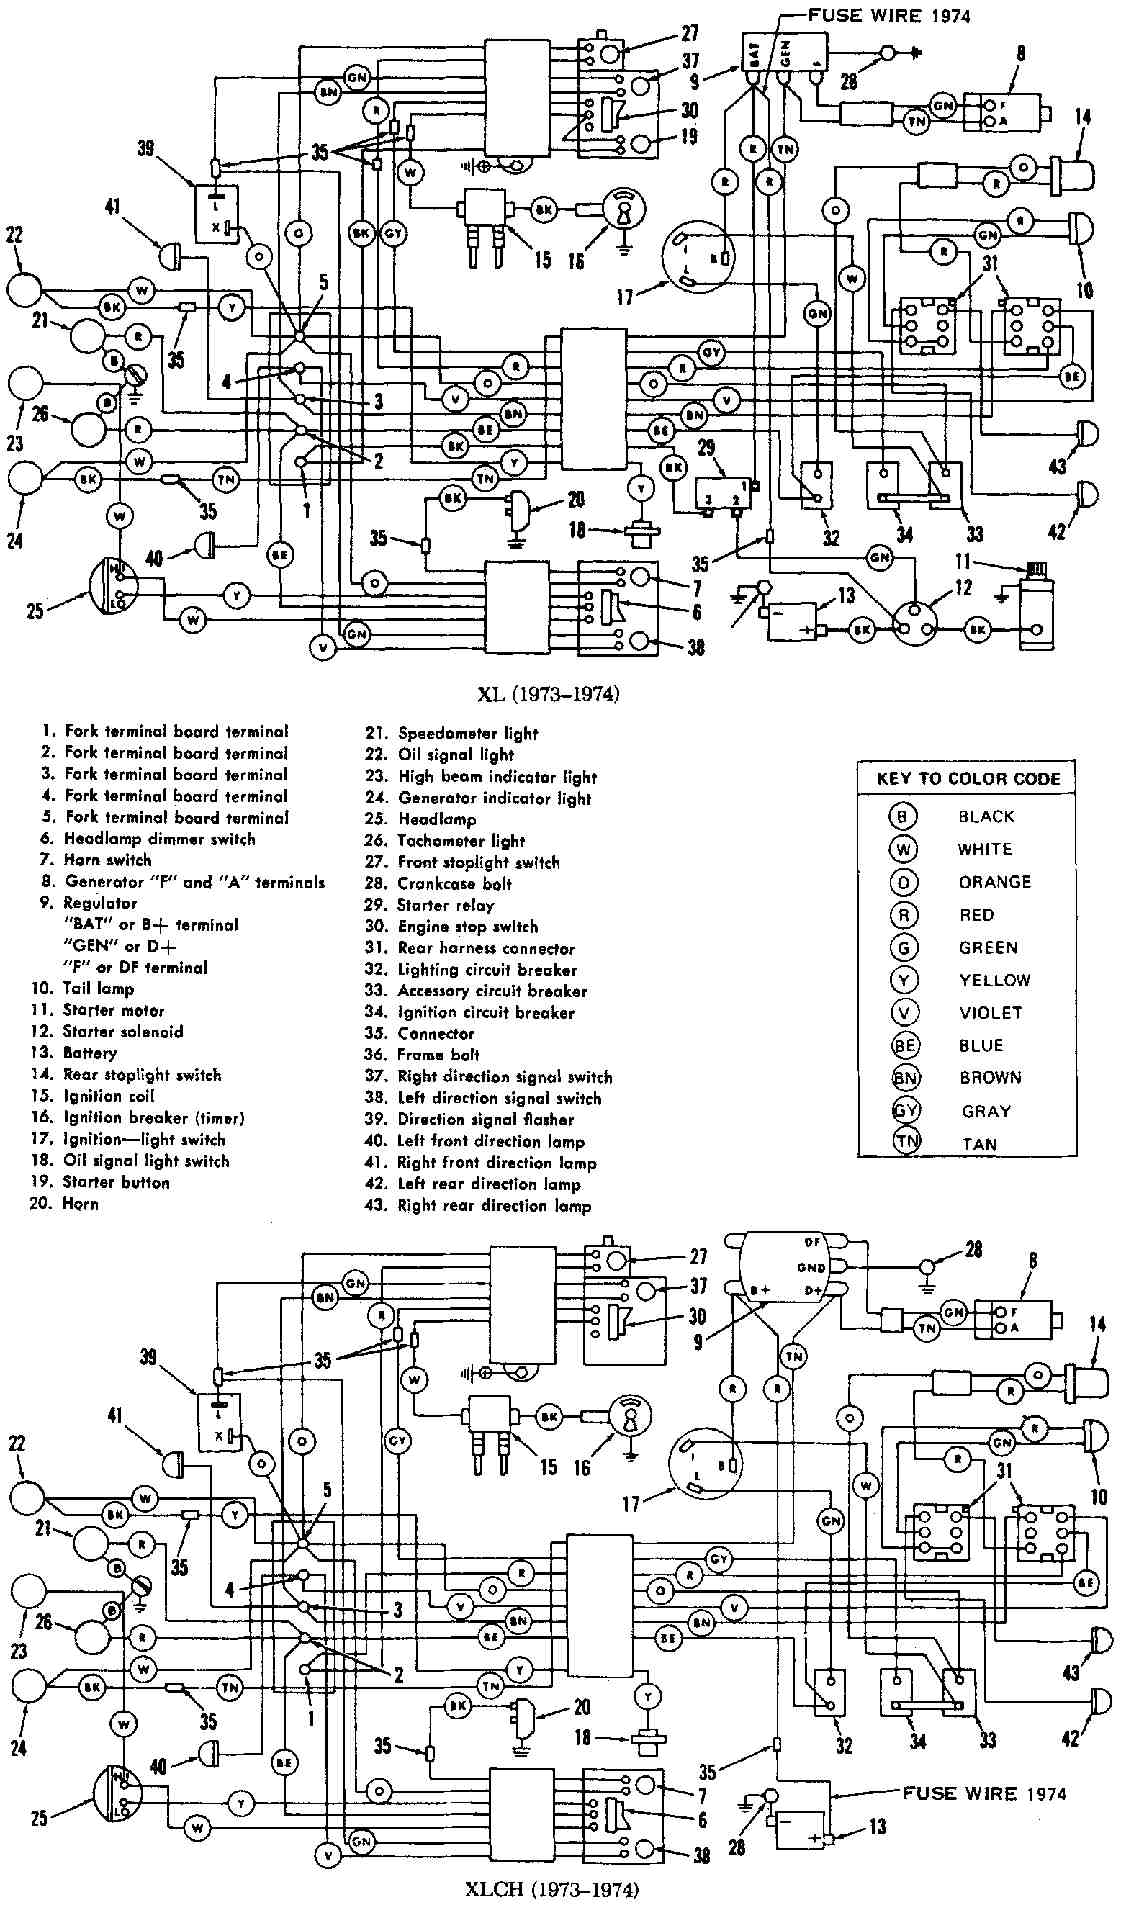 74 Sportster Wiring Diagram Great Installation Of Wwwelectric Circuit Diagramcom Library Rh 66 Mac Happen De 79 1987